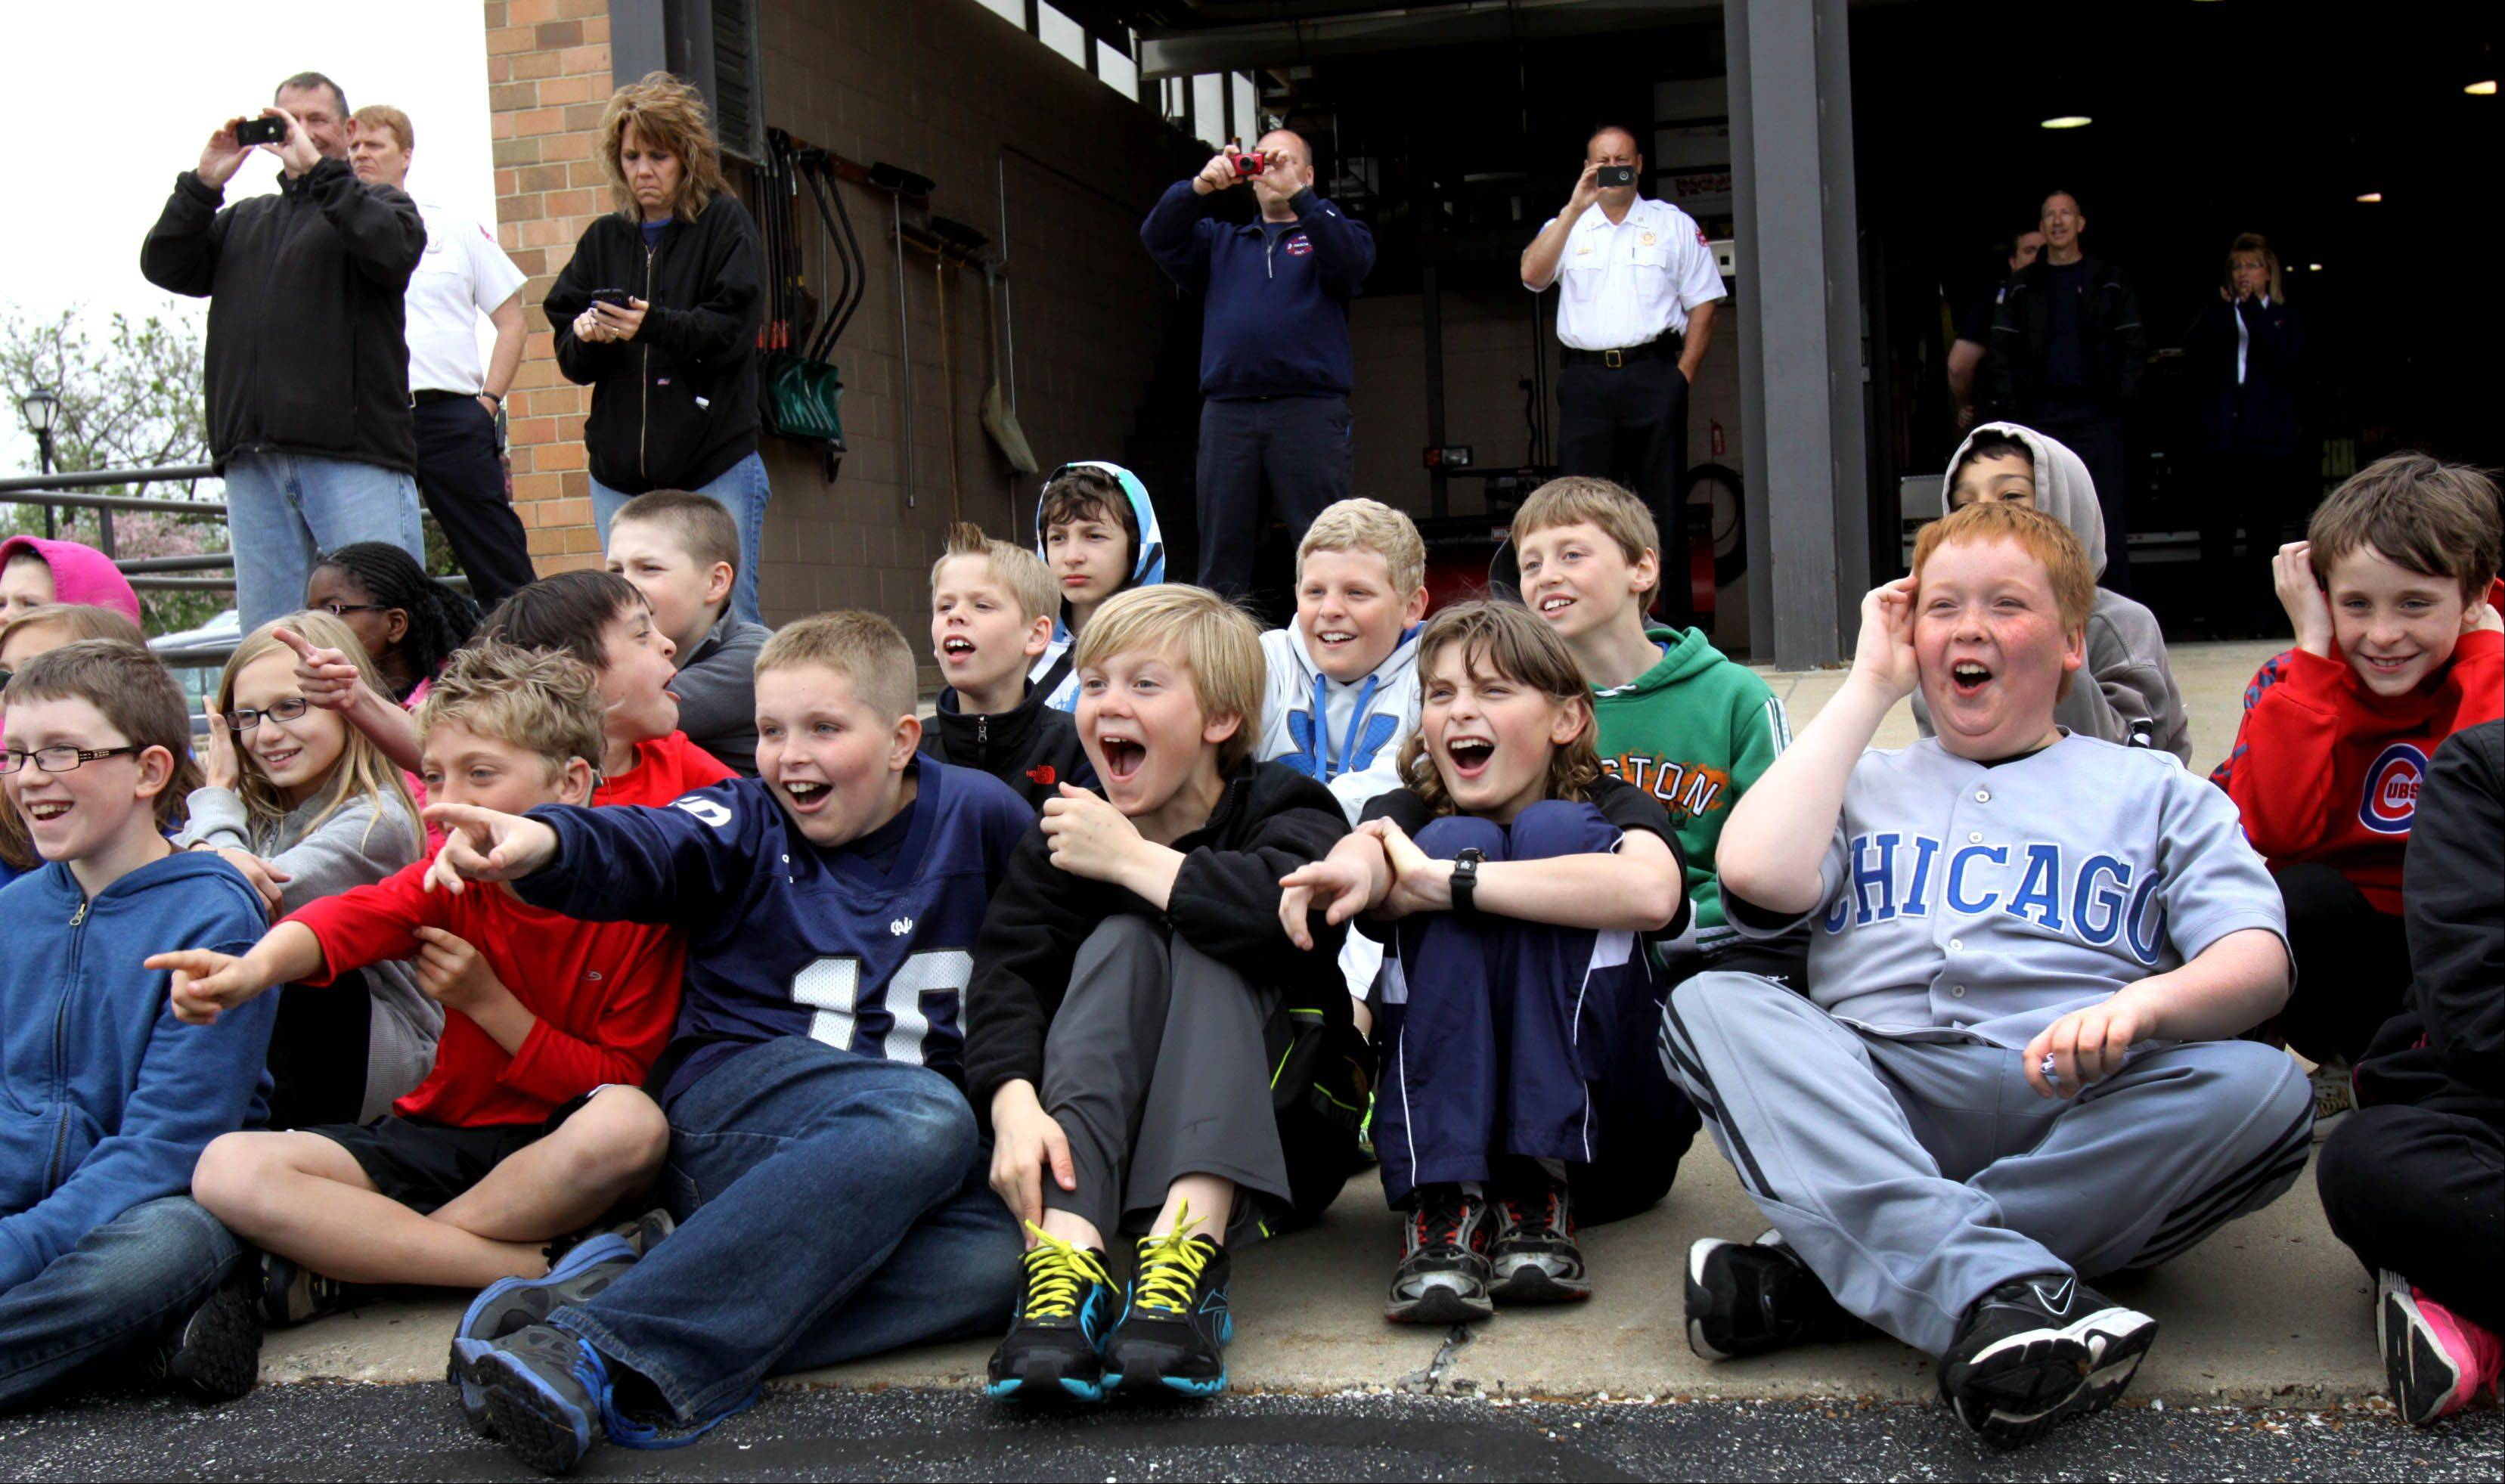 Fifth-graders from Itasca schools react as they start to see flames during a live burn demonstration by the Itasca Fire Department Friday. The demonstration was part of a tour of Itasca for the students.